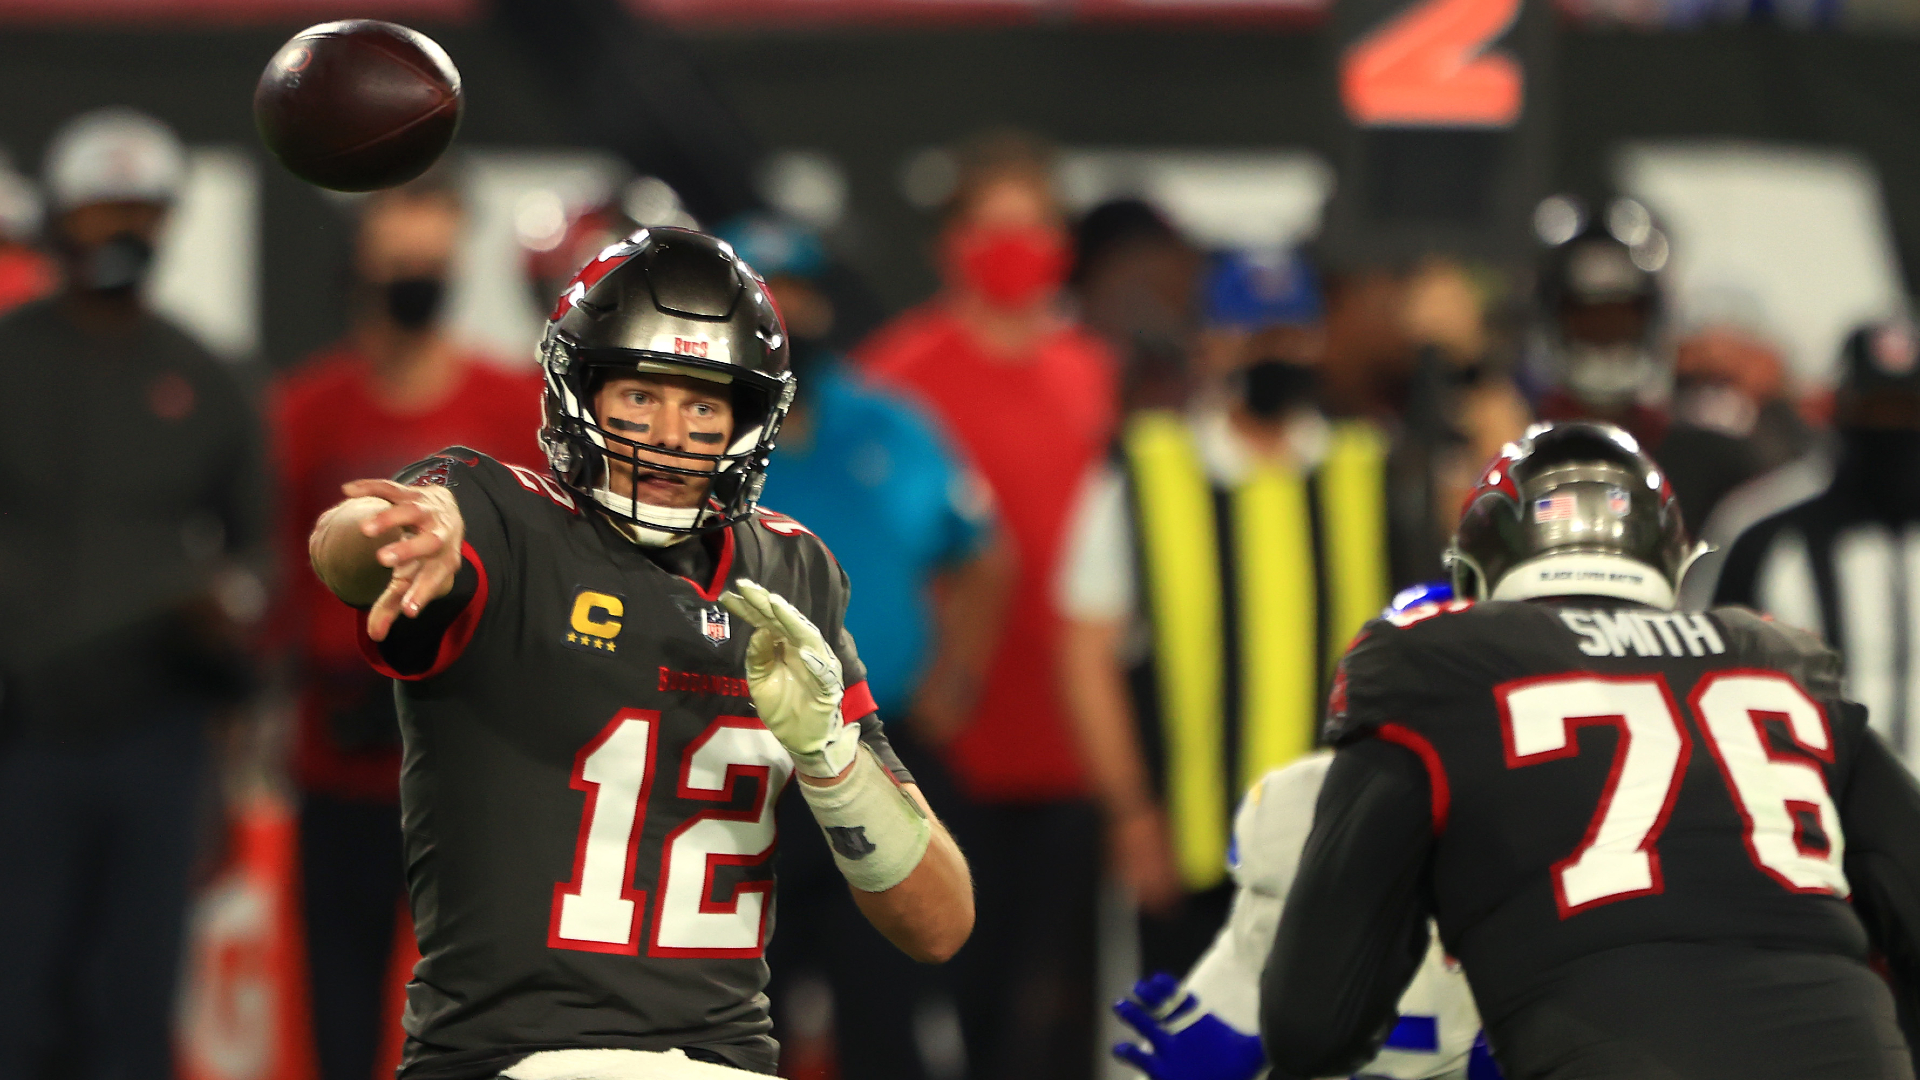 Tampa Bay Buccaneers head coach Bruce Arians called for improvement from his team after Tom Brady had an off night against the Rams.